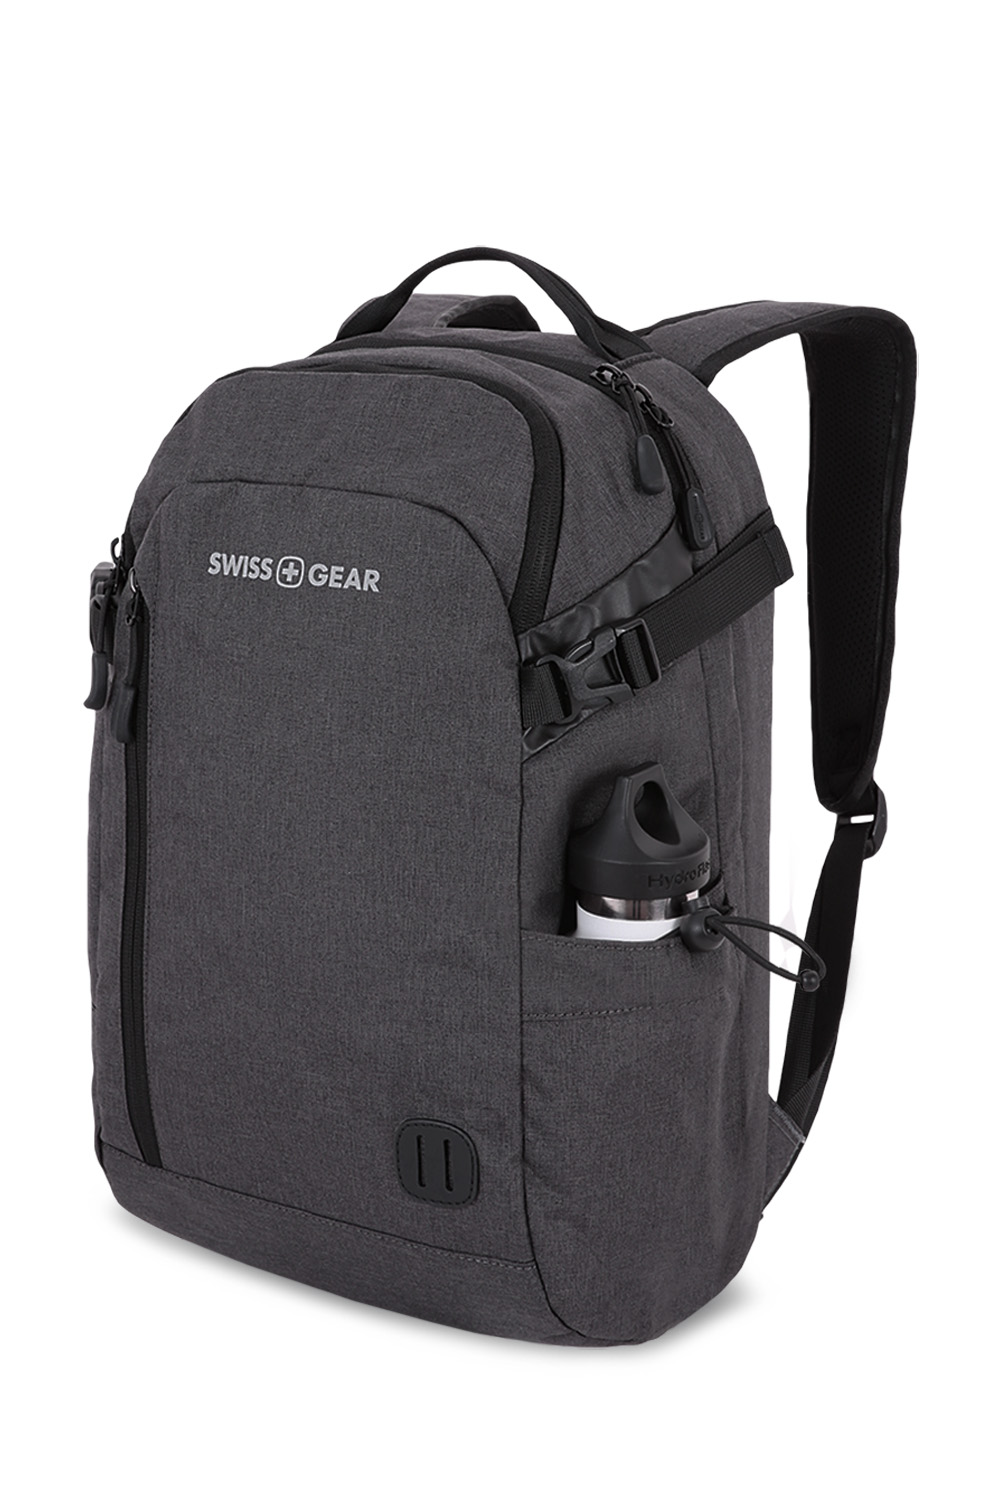 Travel Friendly Backpacks